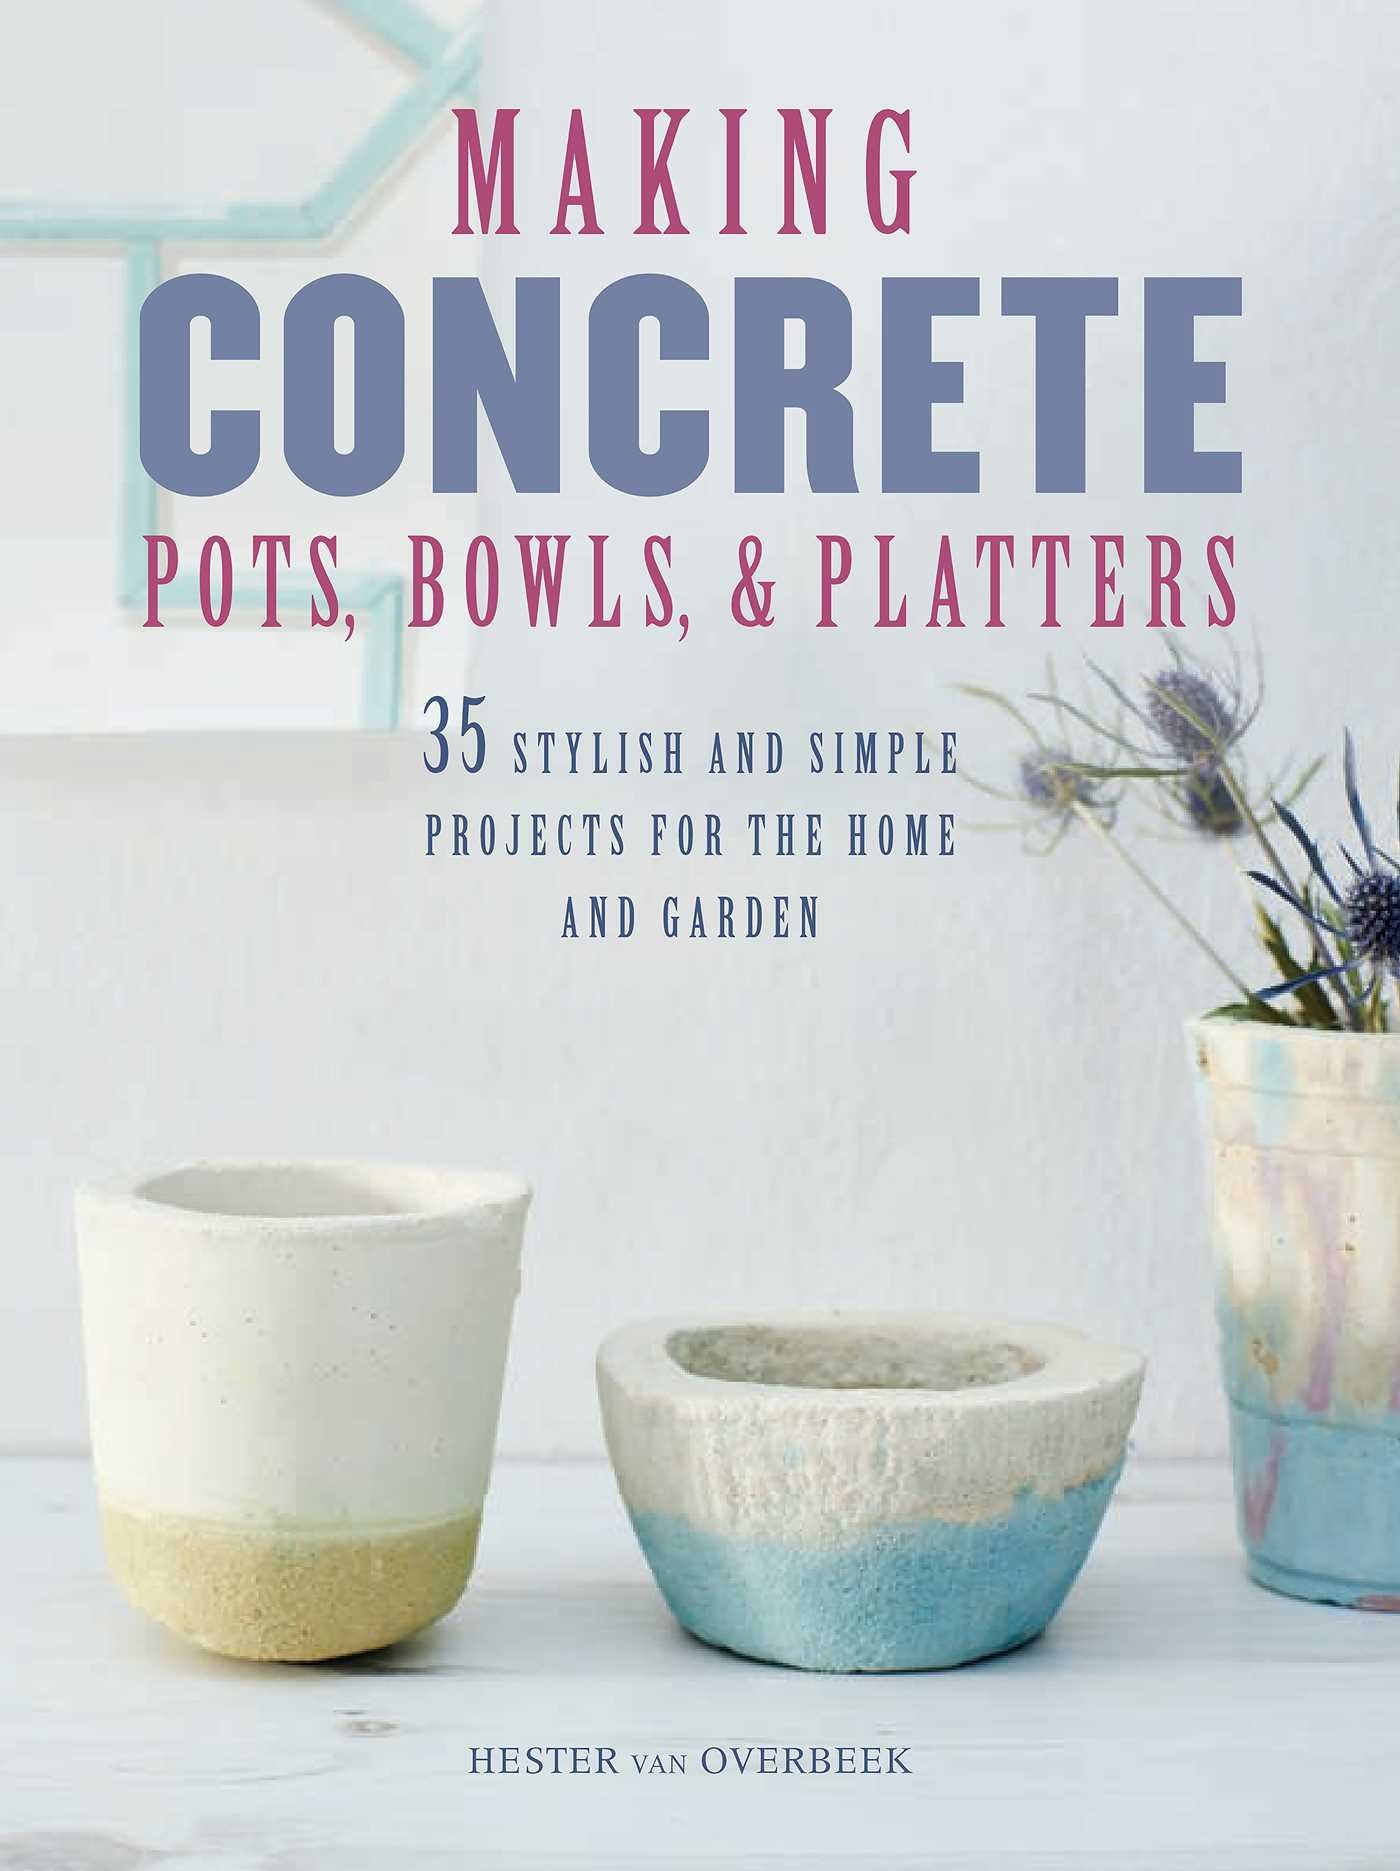 Making Concrete Pots, Bowls, and Platters: 35 stylish and simple projects for the home and garden